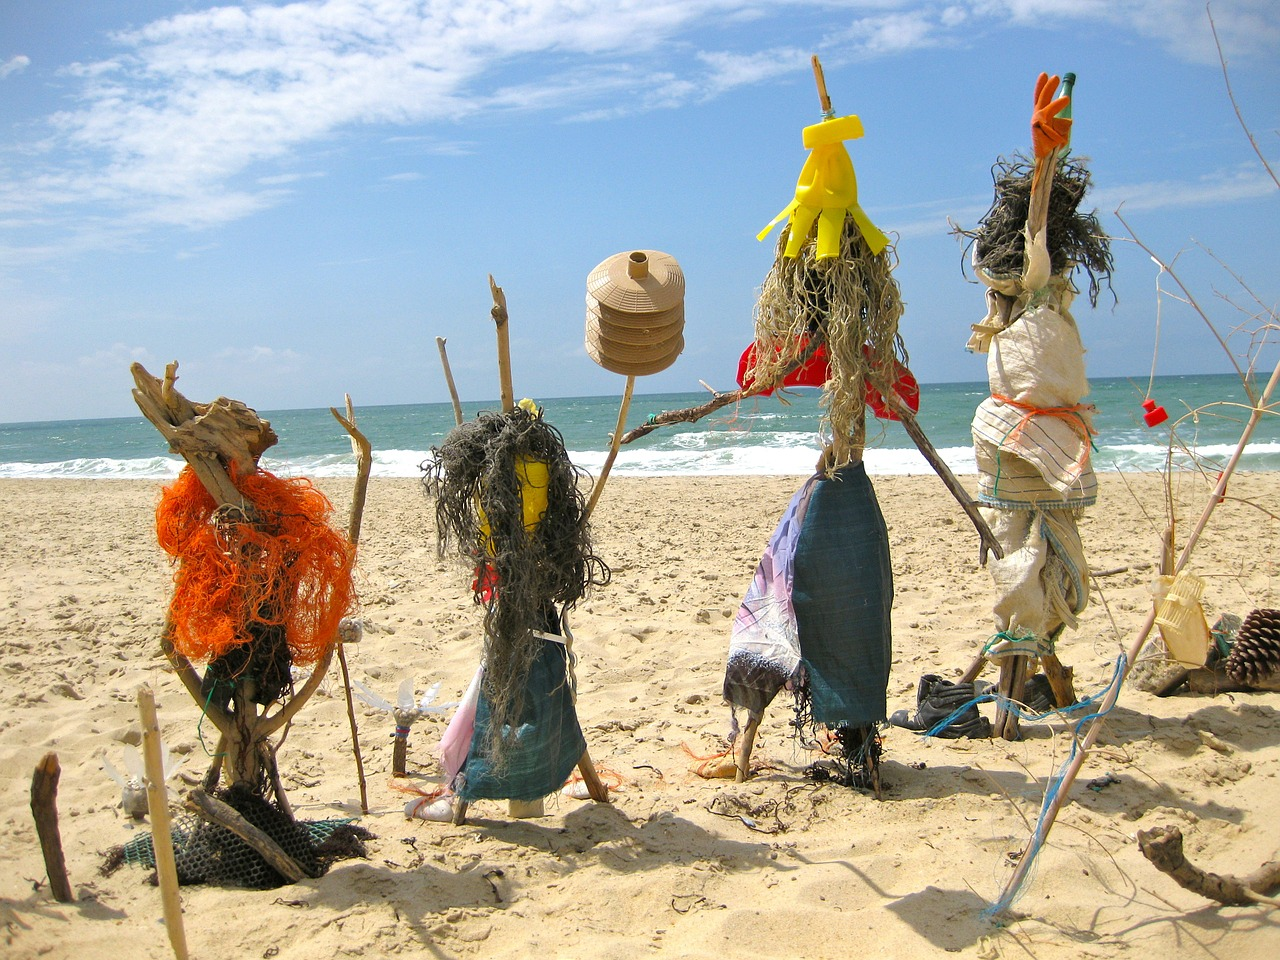 Ce général haïtien a interdit le « vodou » à Saint-Domingue. Photo : Pixabay